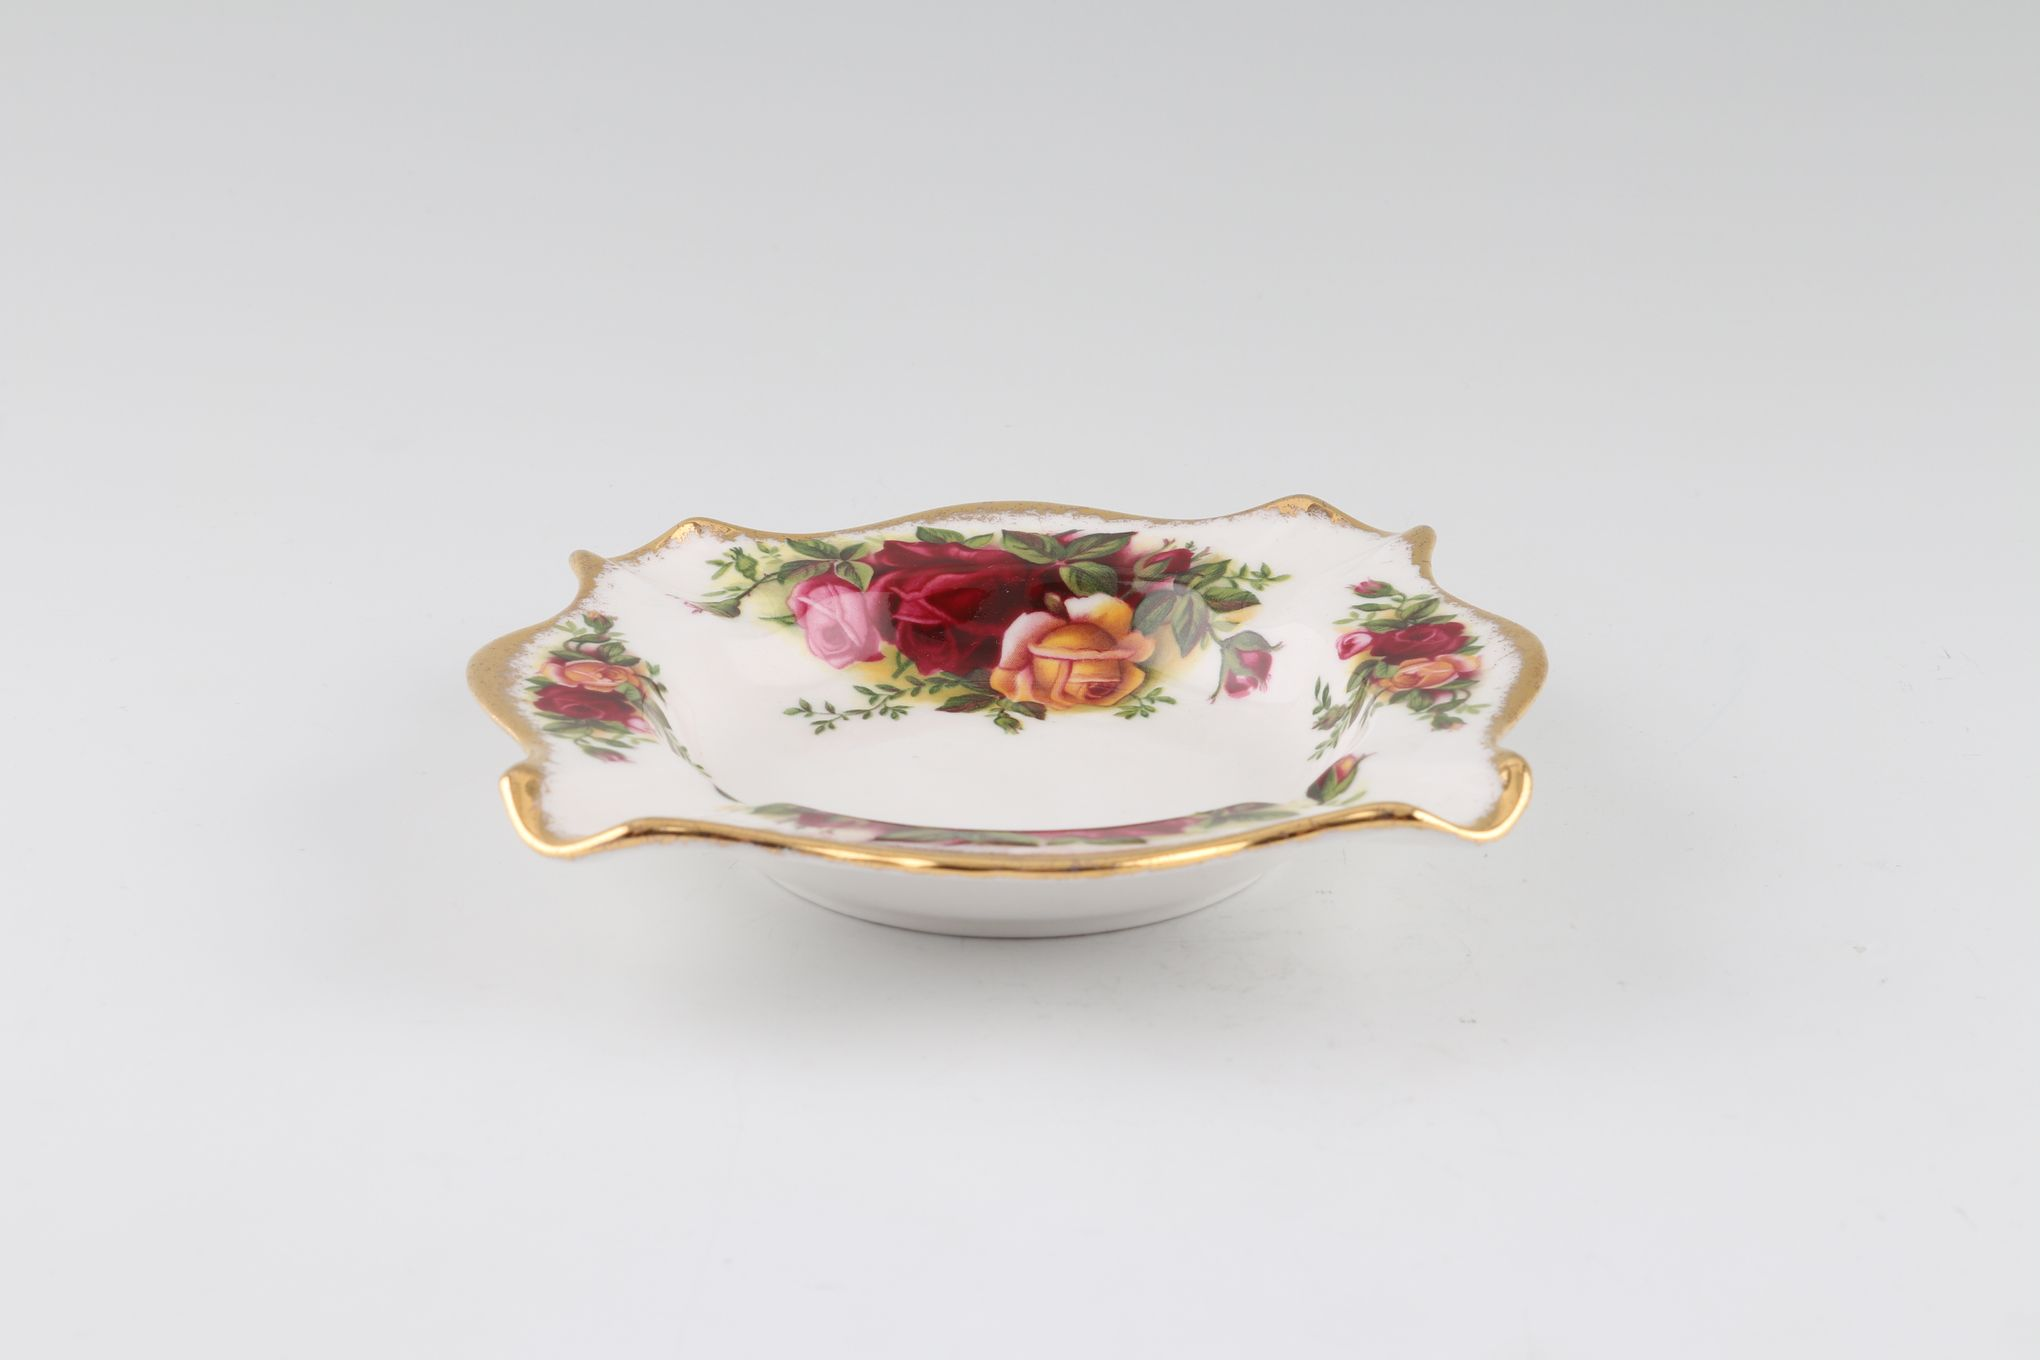 """Royal Albert Old Country Roses - Made in England Ashtray 4 3/4 x 4 3/4"""" thumb 2"""